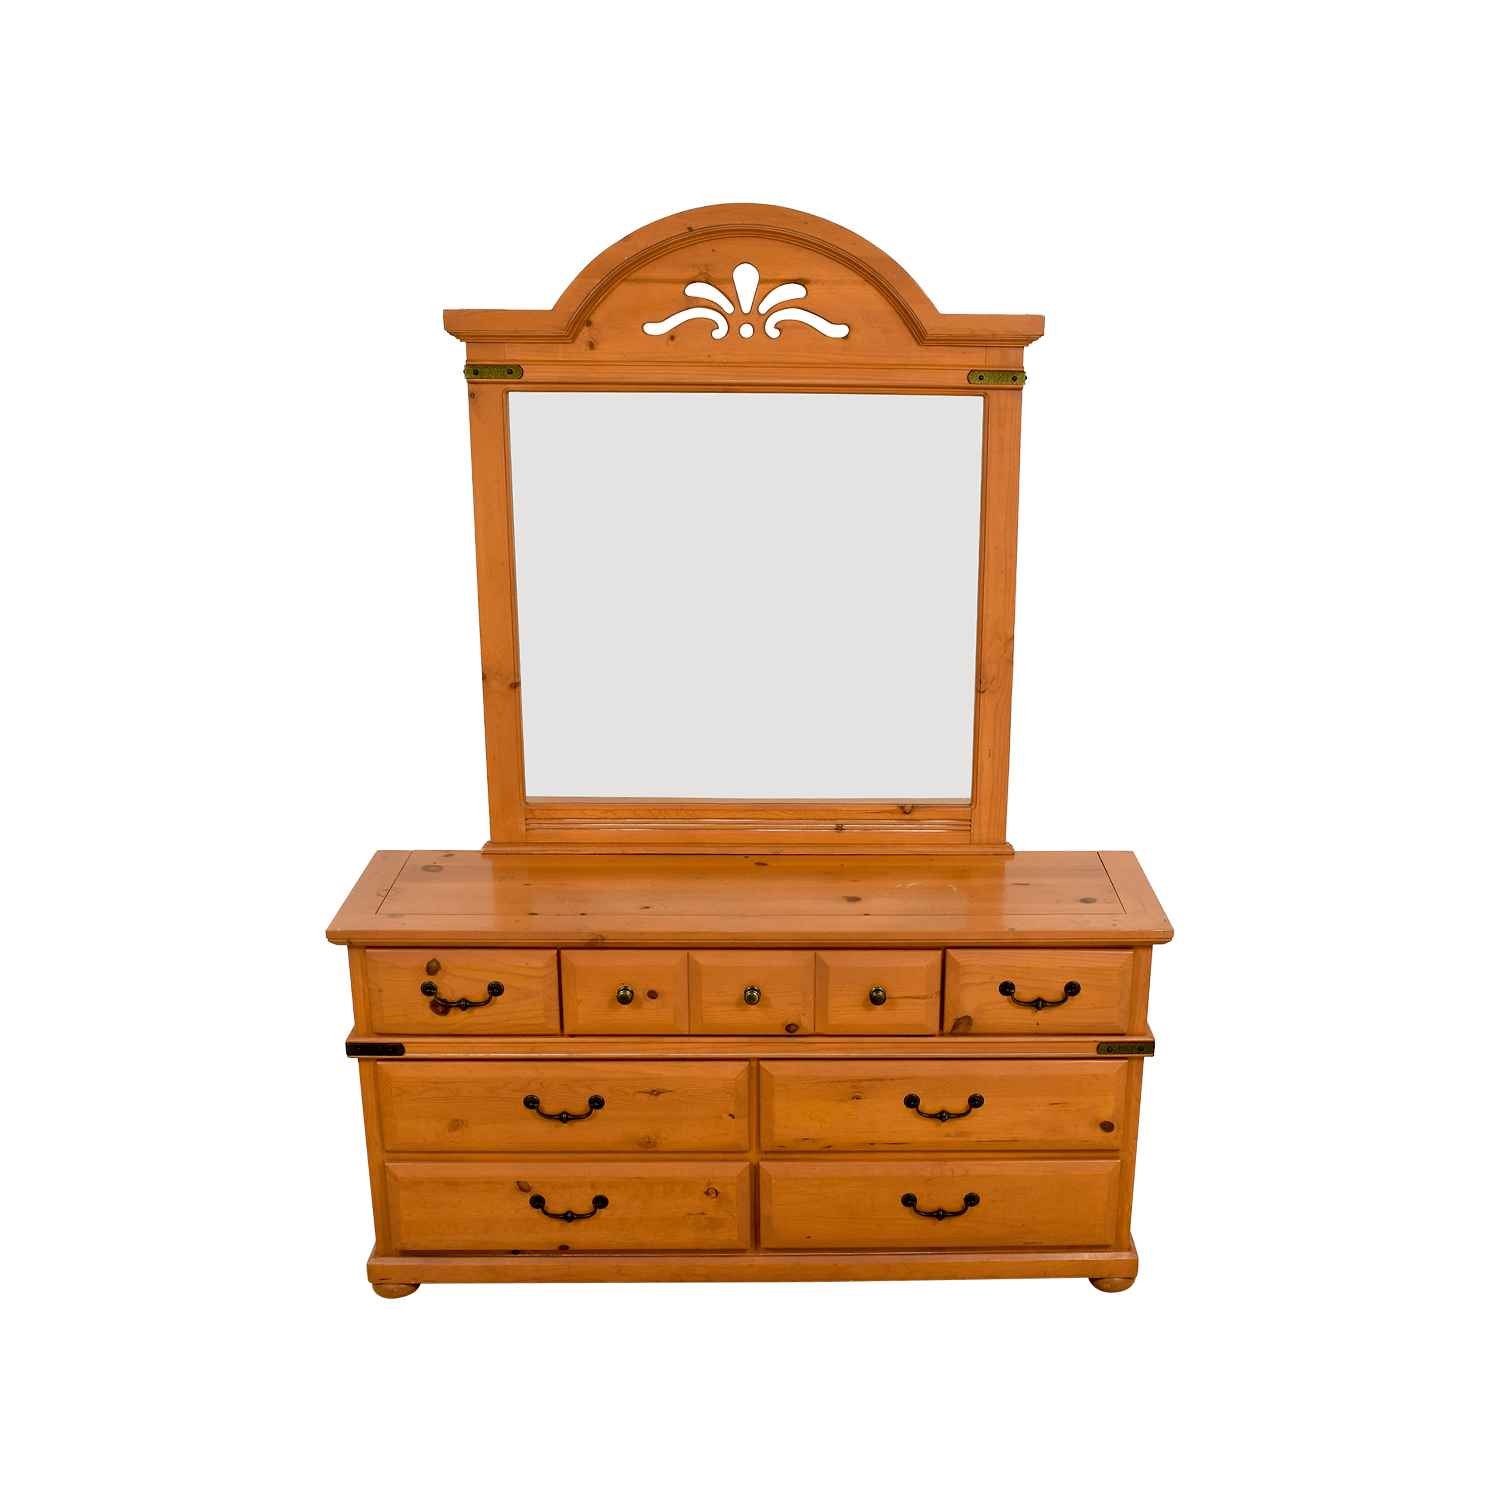 Wood Seven-Drawer Dresser with Cutout Mirror dimensions